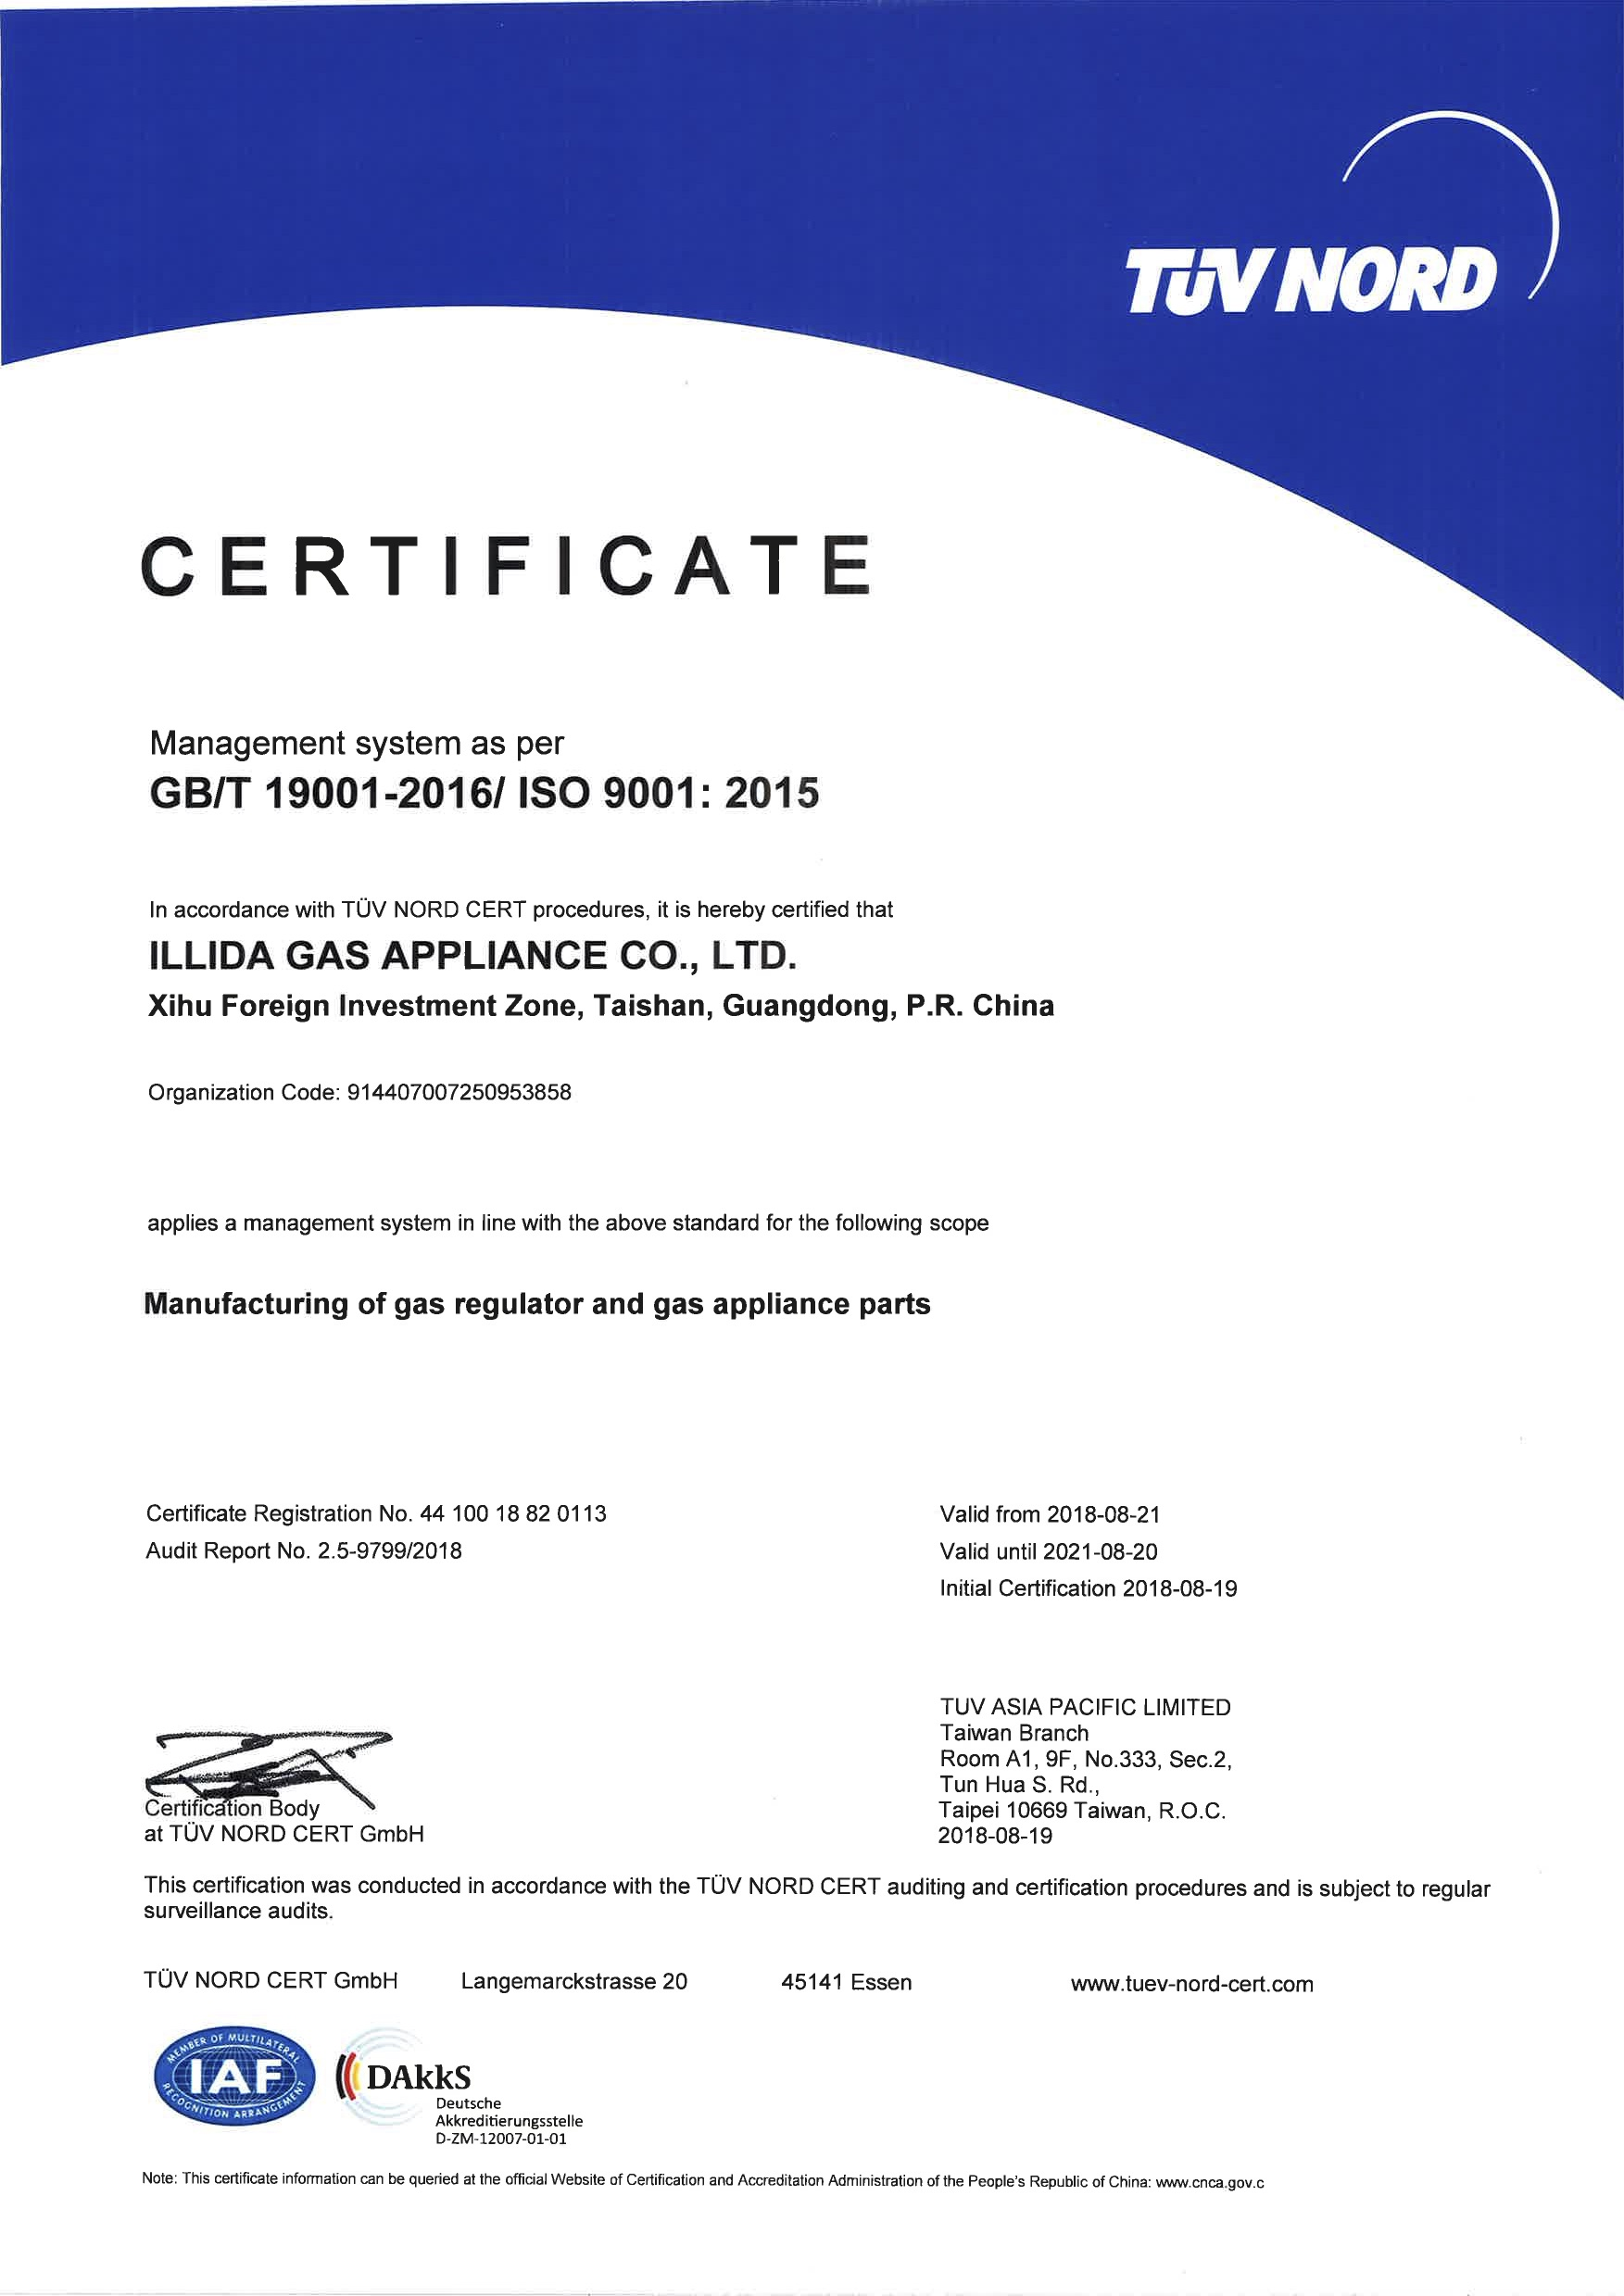 ISO 9001:2015 Image